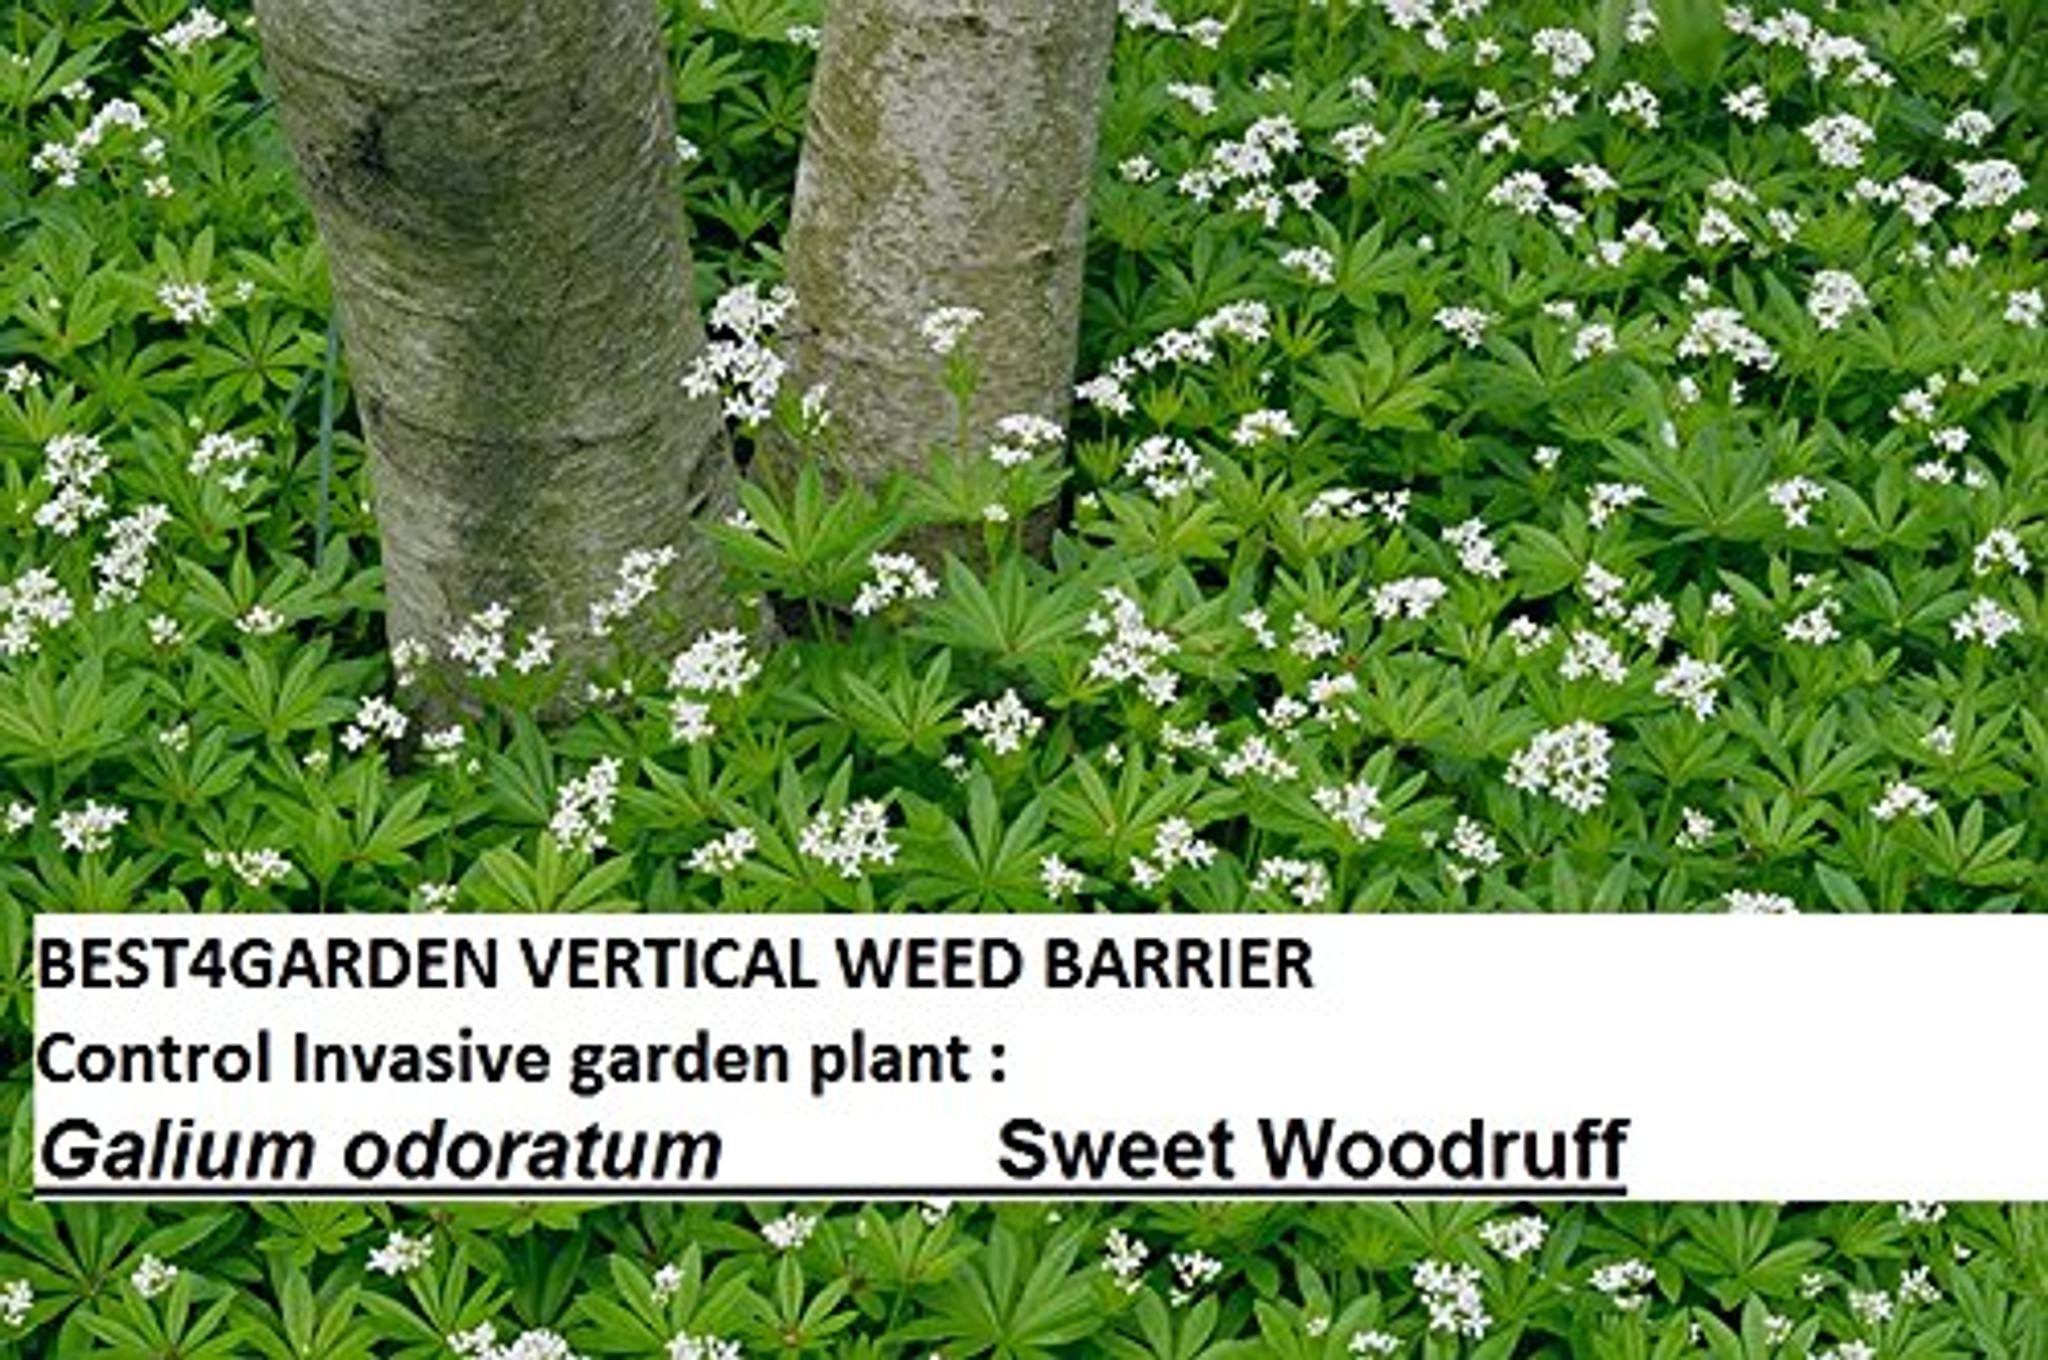 Invasive garden plant  Galium odoratum, the sweetscented bedstraw, woodruff  Also example of a weed that can be controlled with best4garden vertical weed barrier . This plant spread with rhizomes  so the only way is not  let it grow back into the garden by using the  barrier above